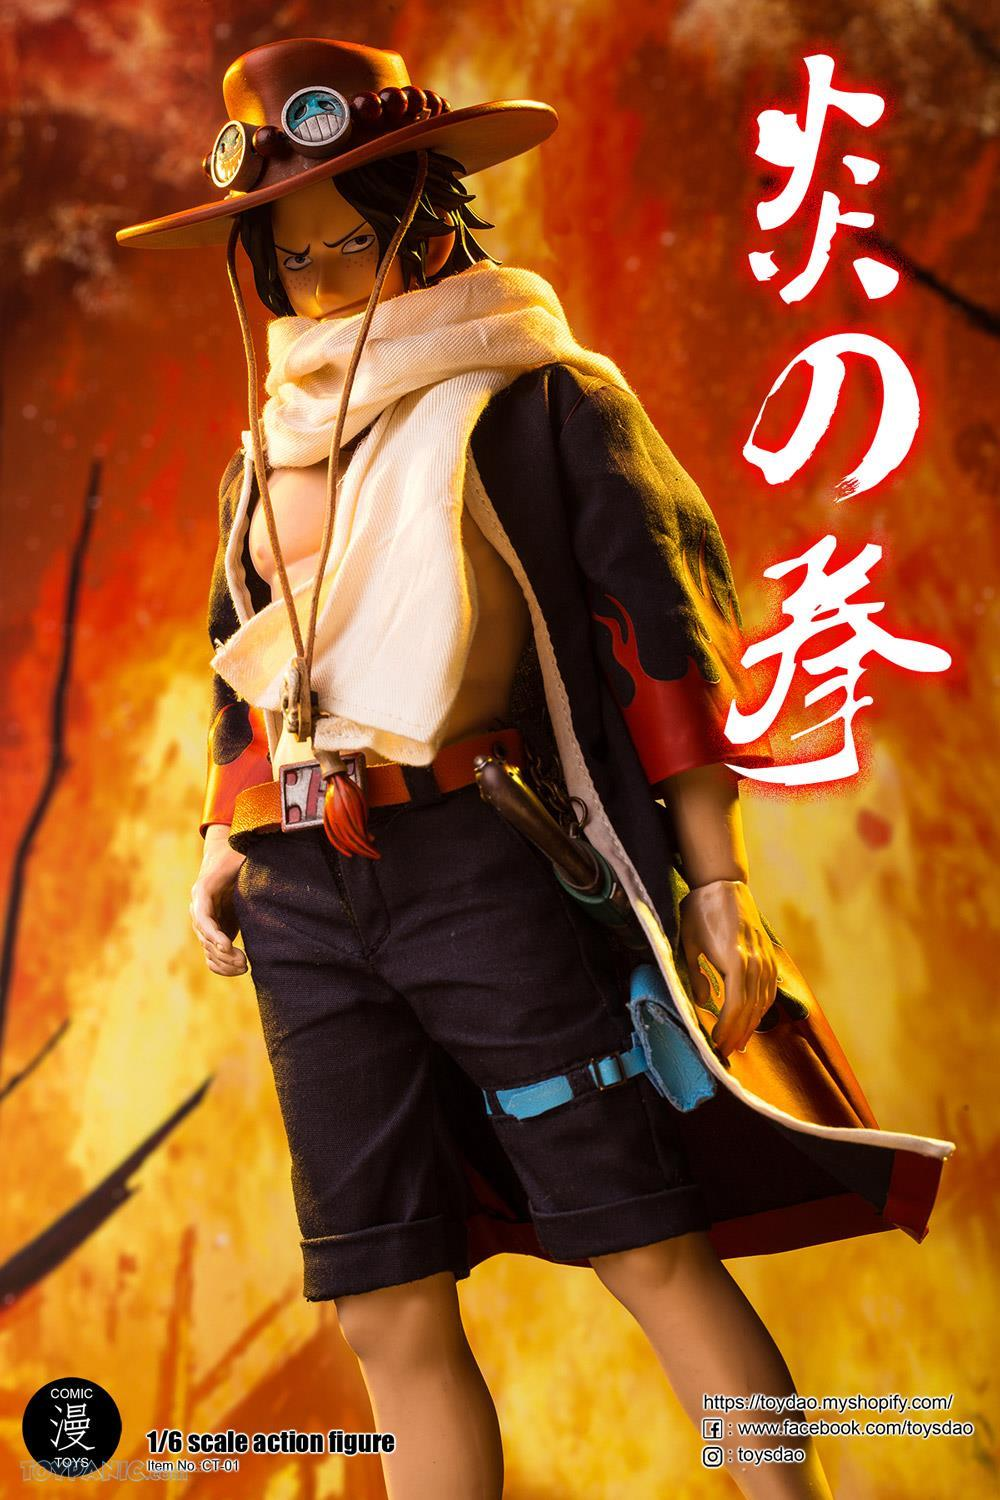 ToysDao - NEW PRODUCT: Toys Dao: 1/6 scale Fireman Action Figure  Code: CT-01_1 52220113